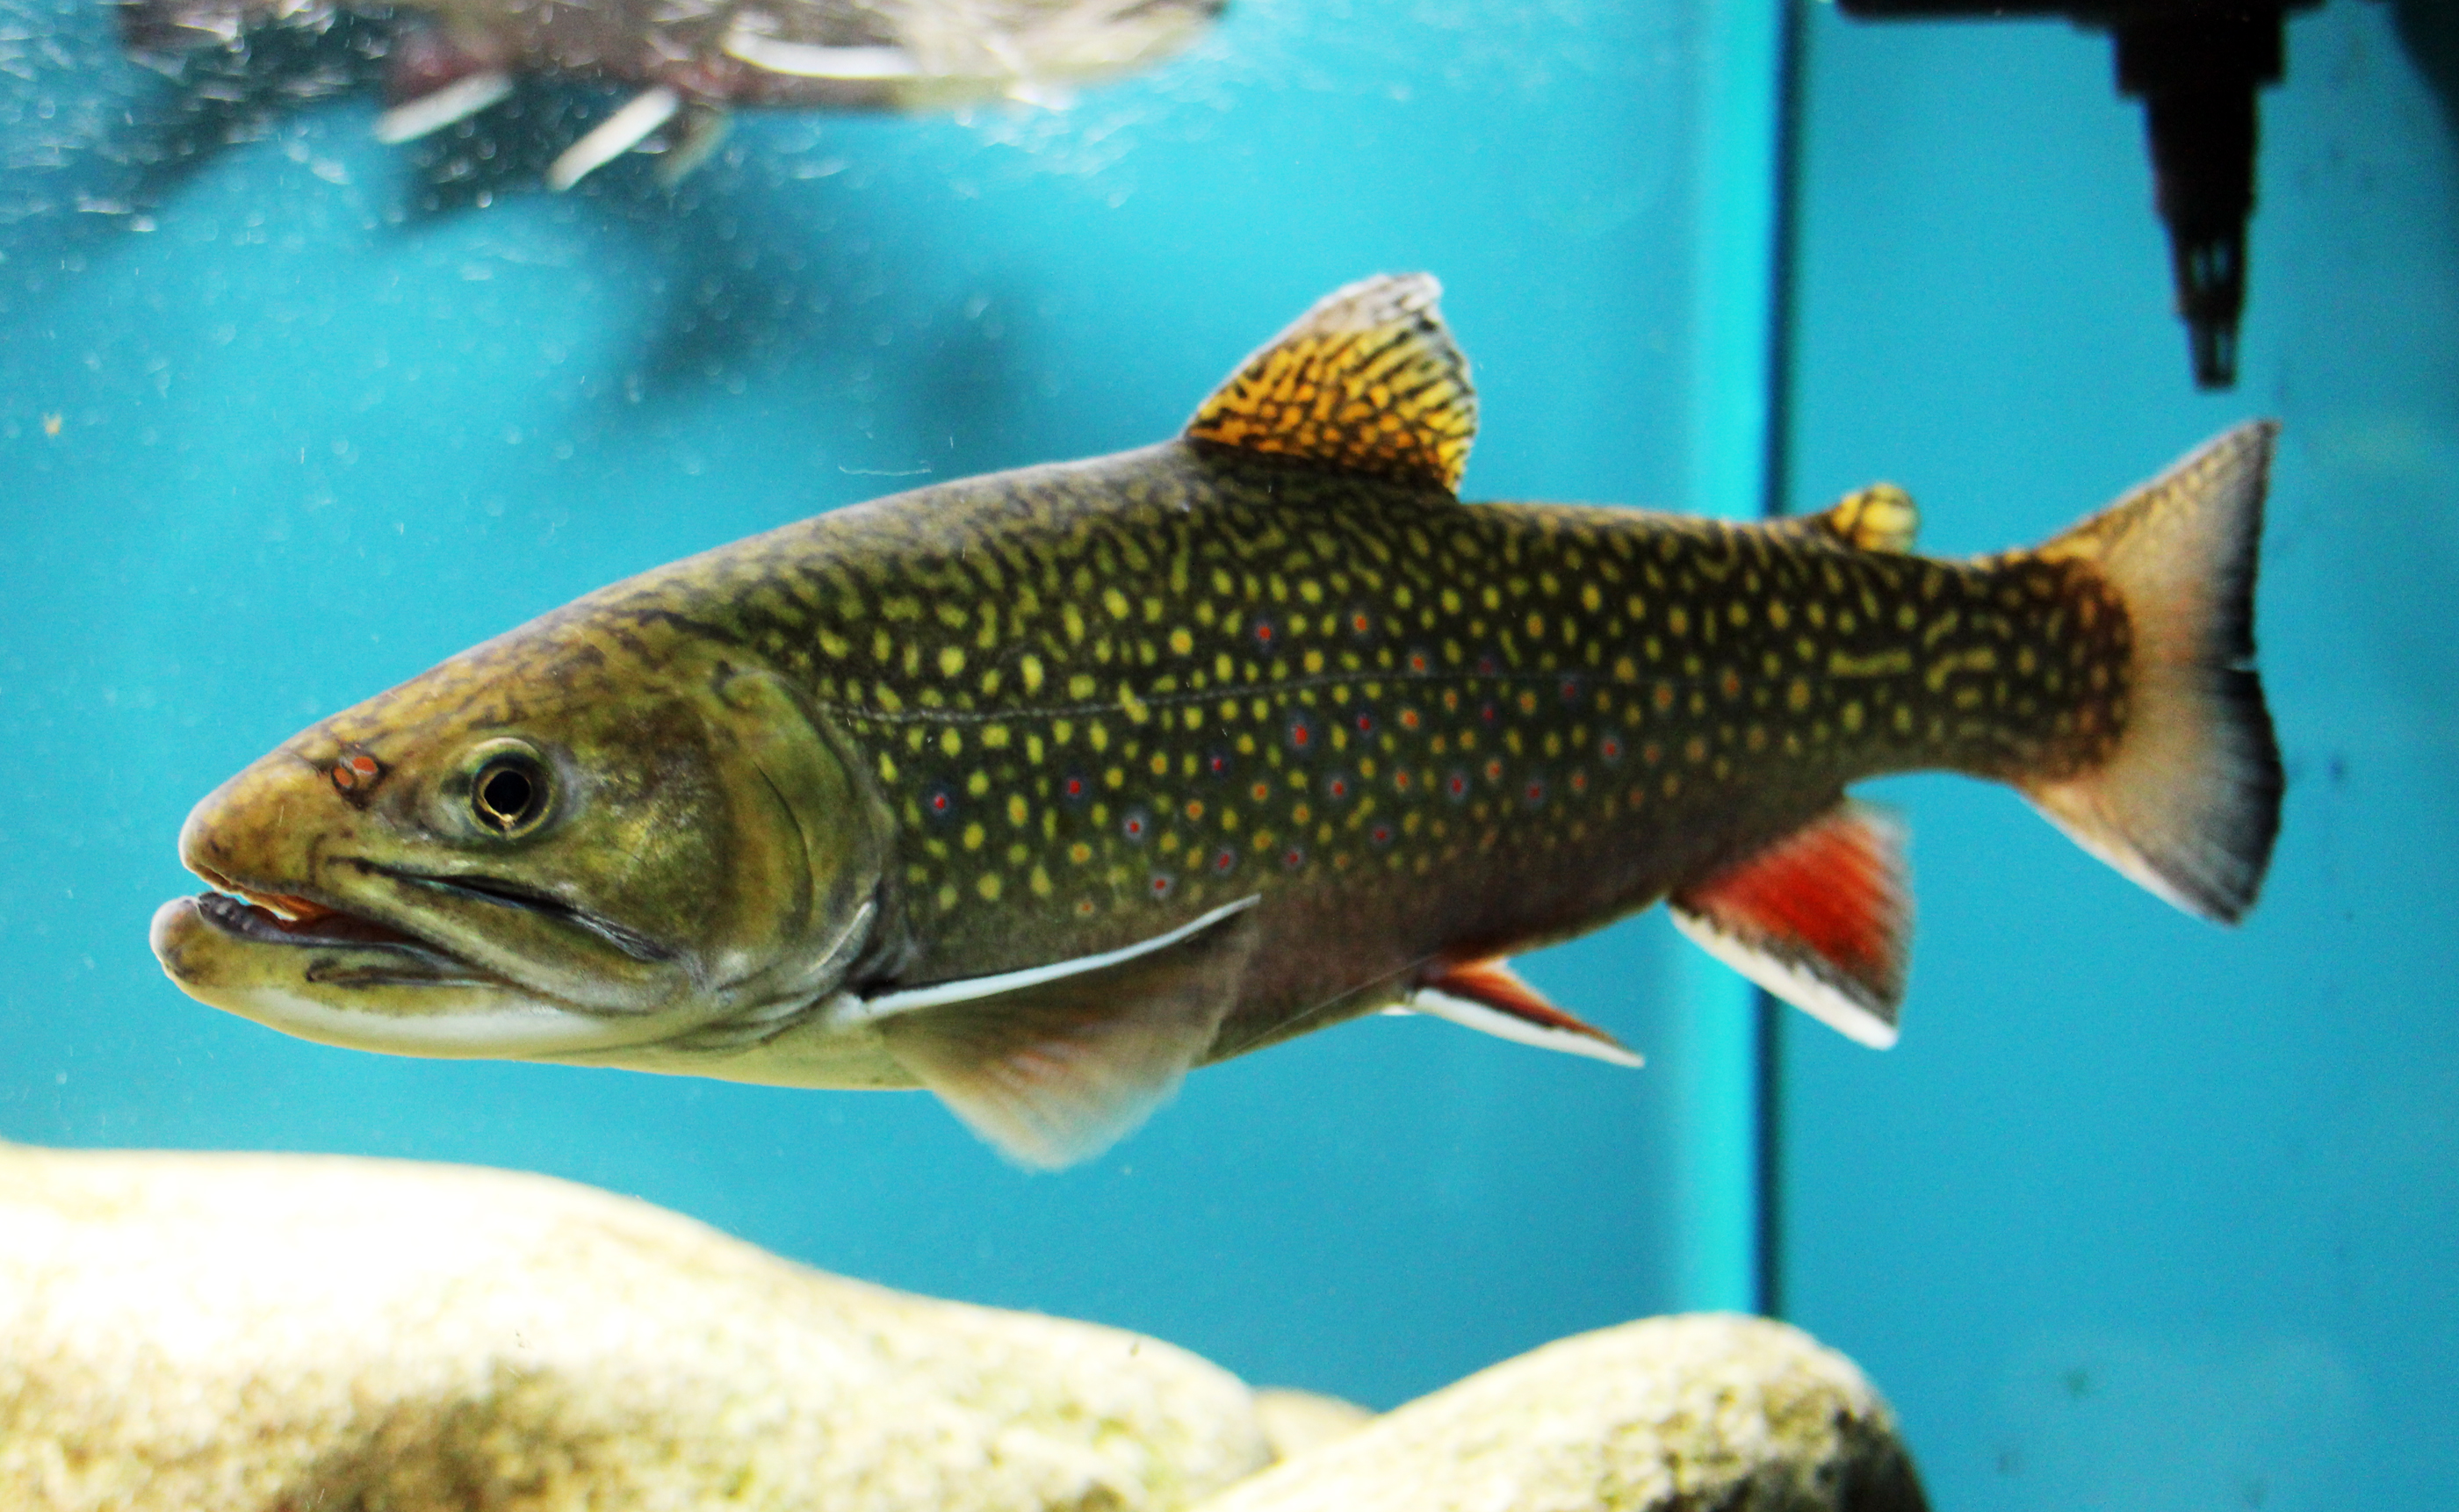 Brook trout aquarium wallpaper